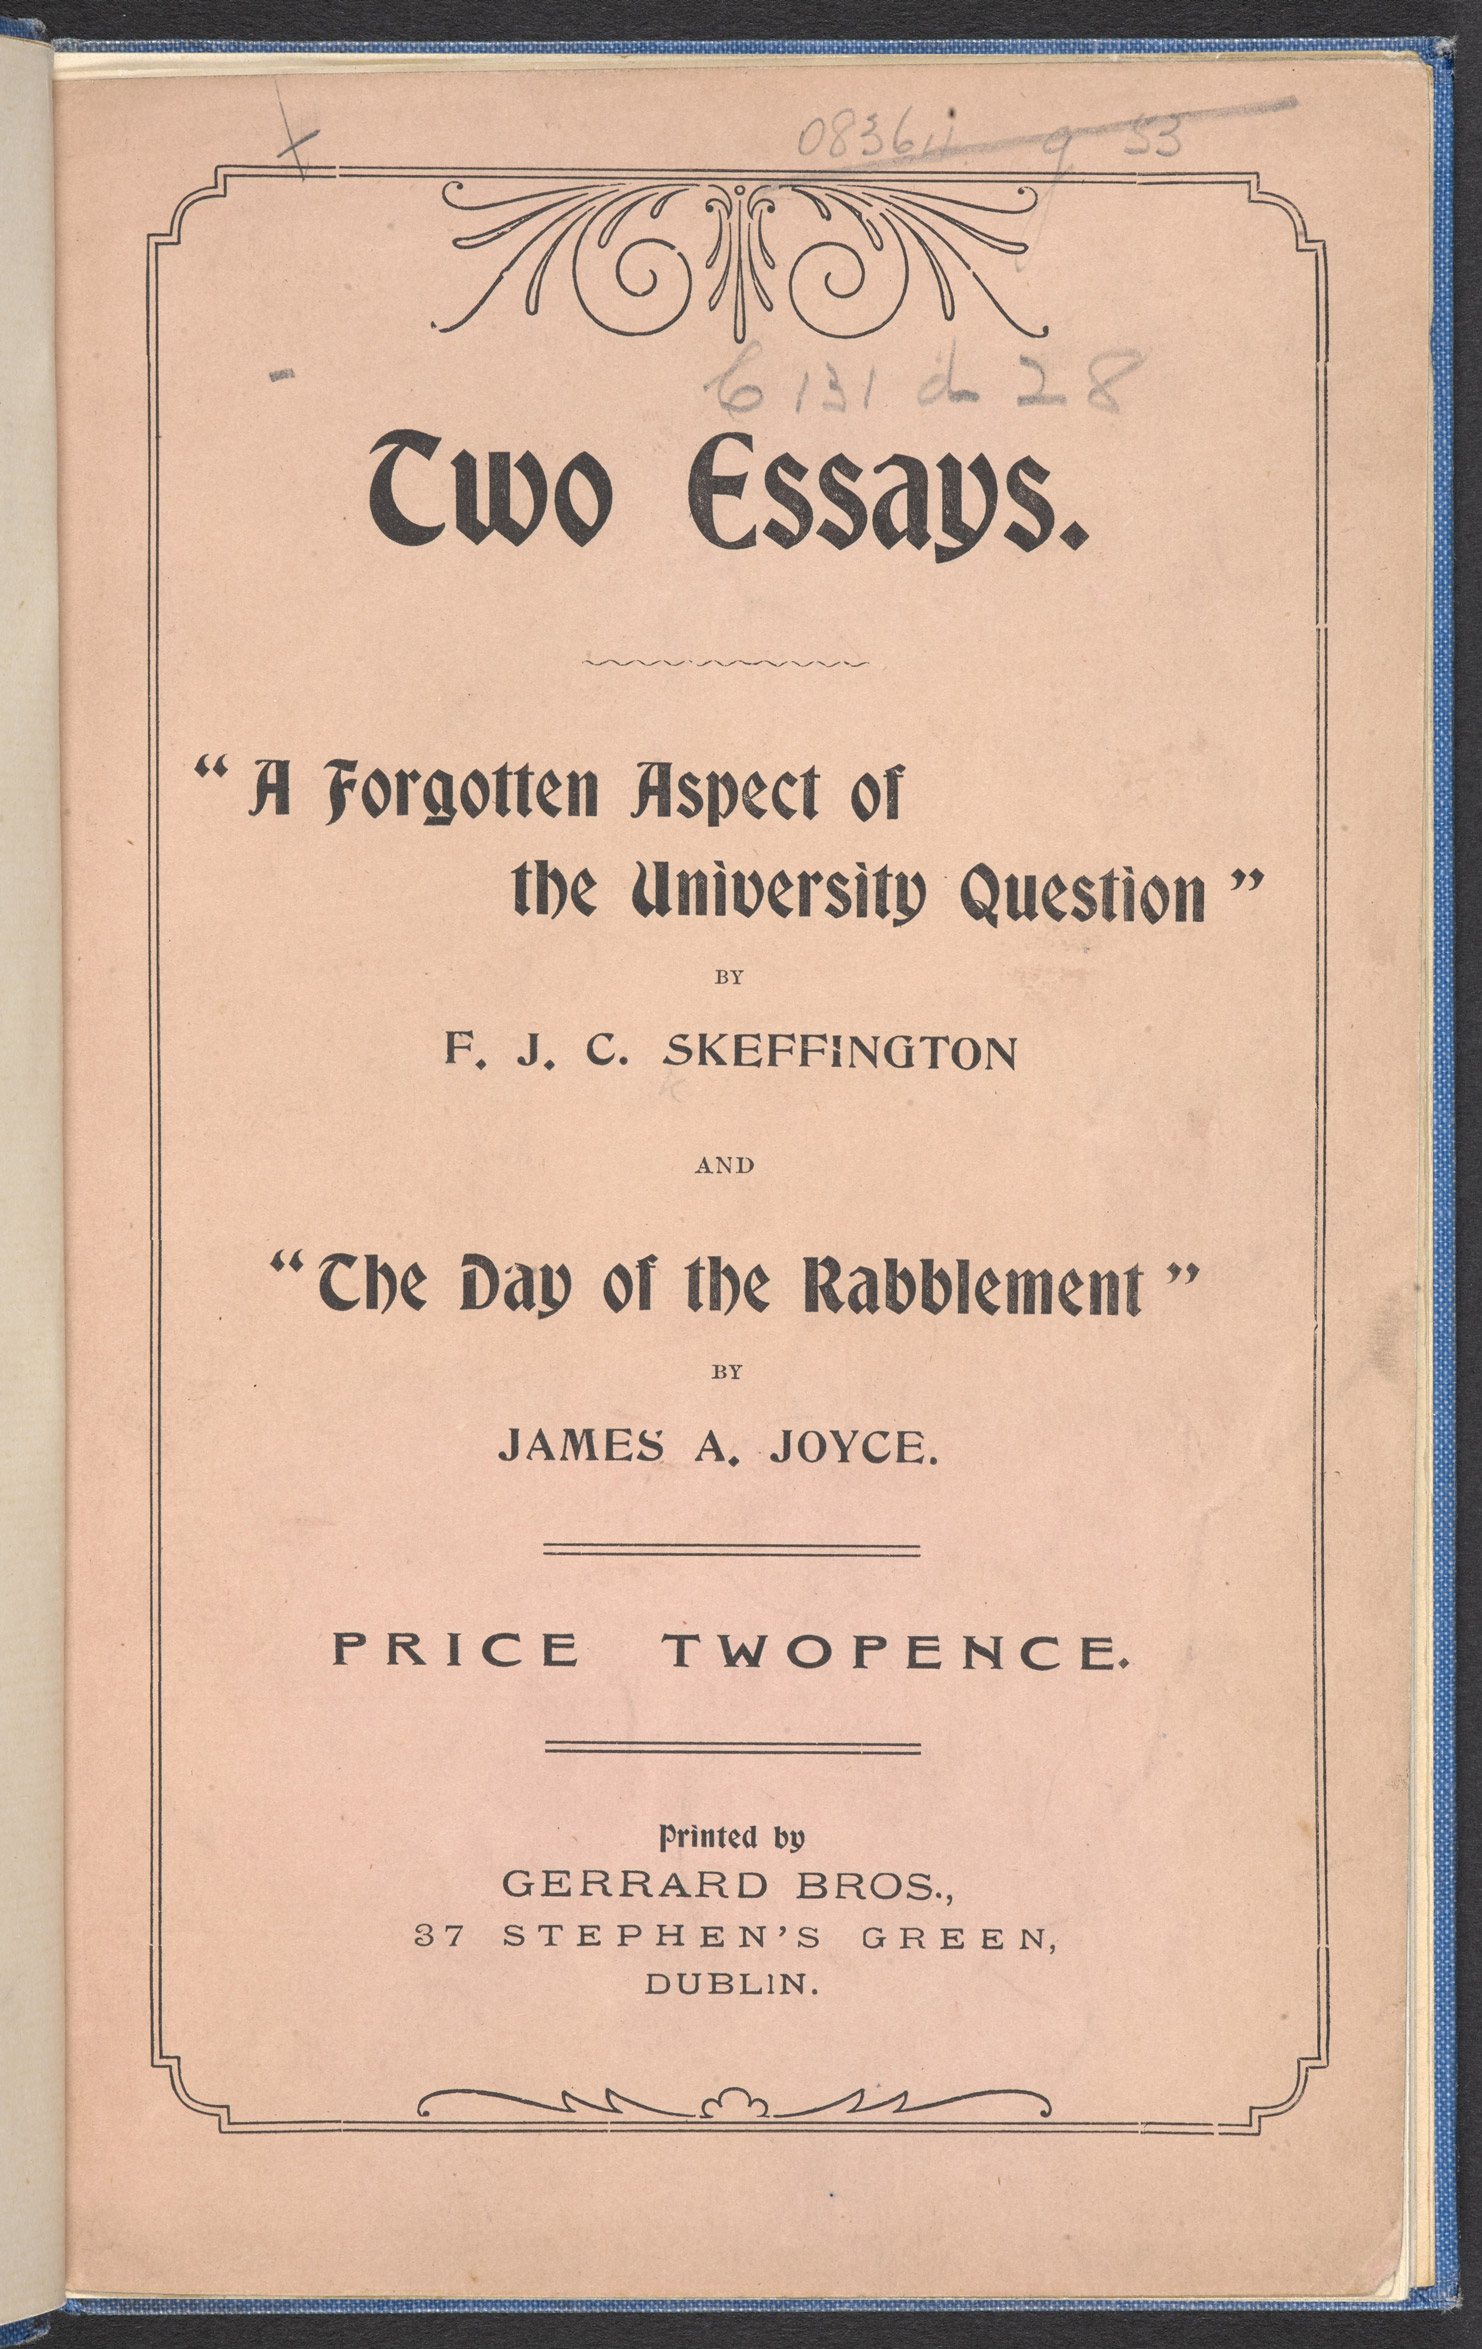 'The Day of the Rabblement', an essay by James Joyce